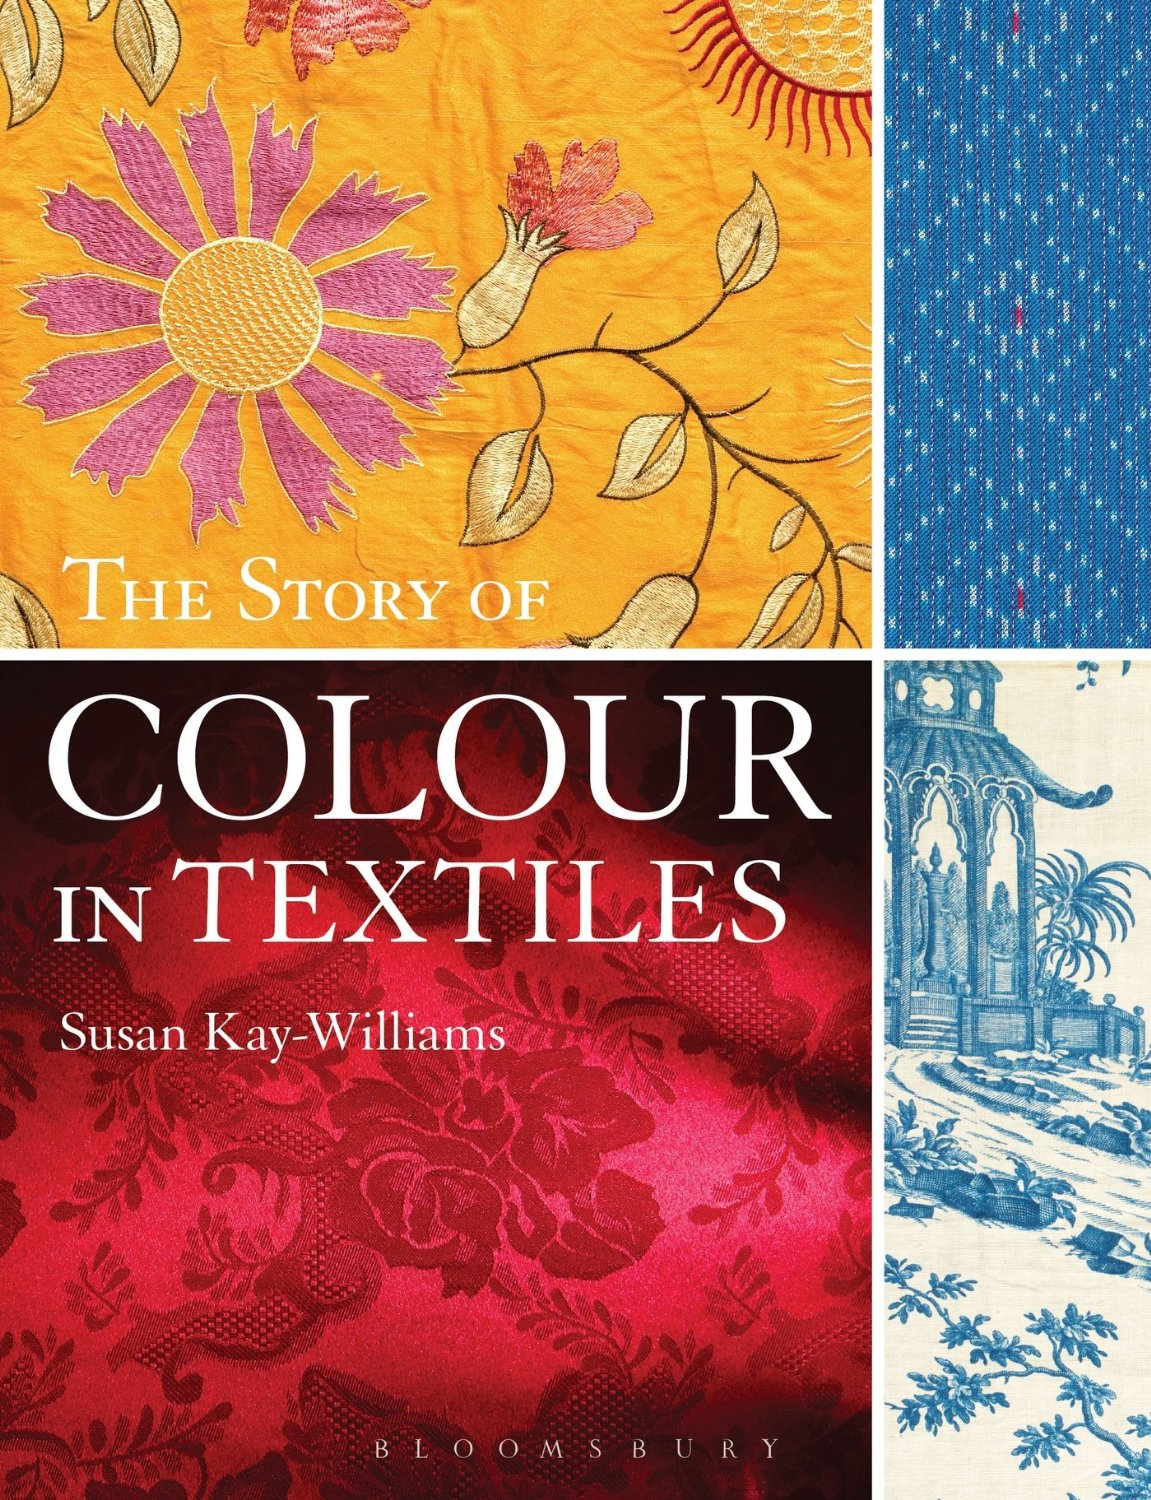 The Story of Colour In Textiles by Susan Kay Williams